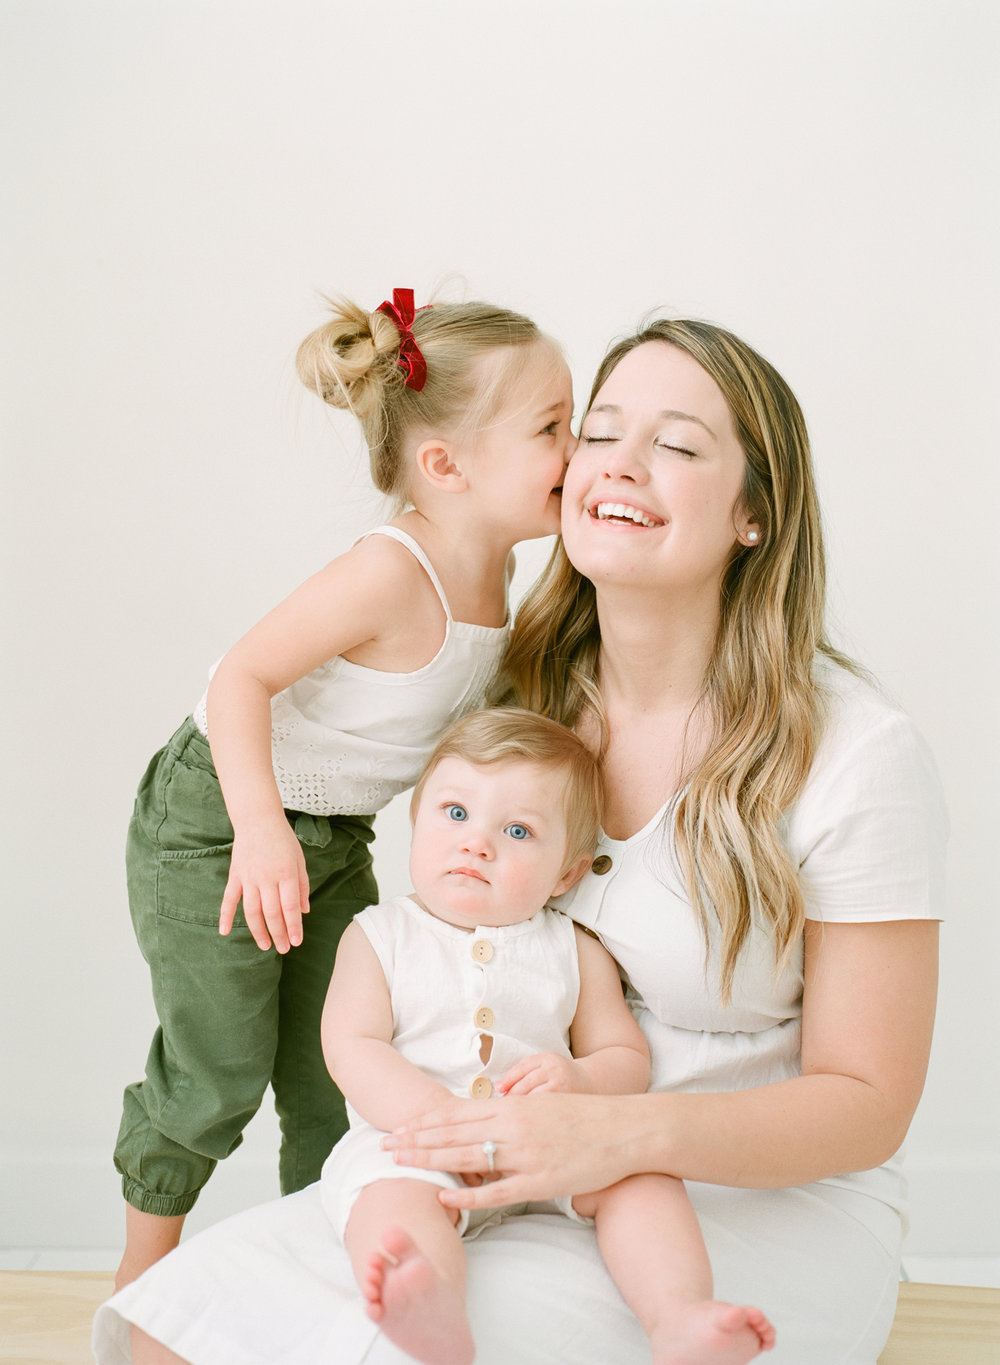 affordable-family-newborn-studio-photographer-raleigh-wake-forest-001